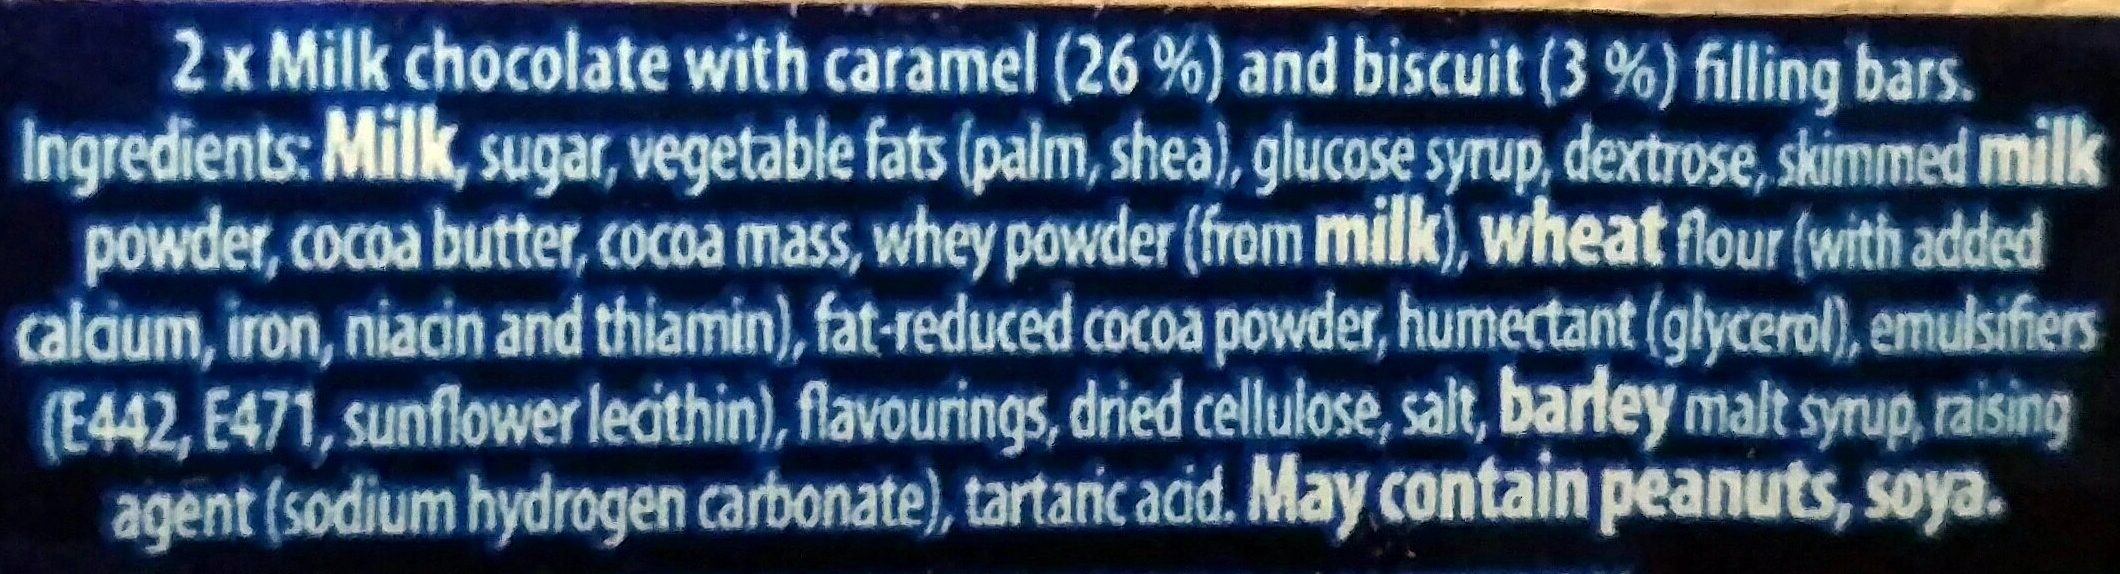 Cadbury Boost Duo - Ingredients